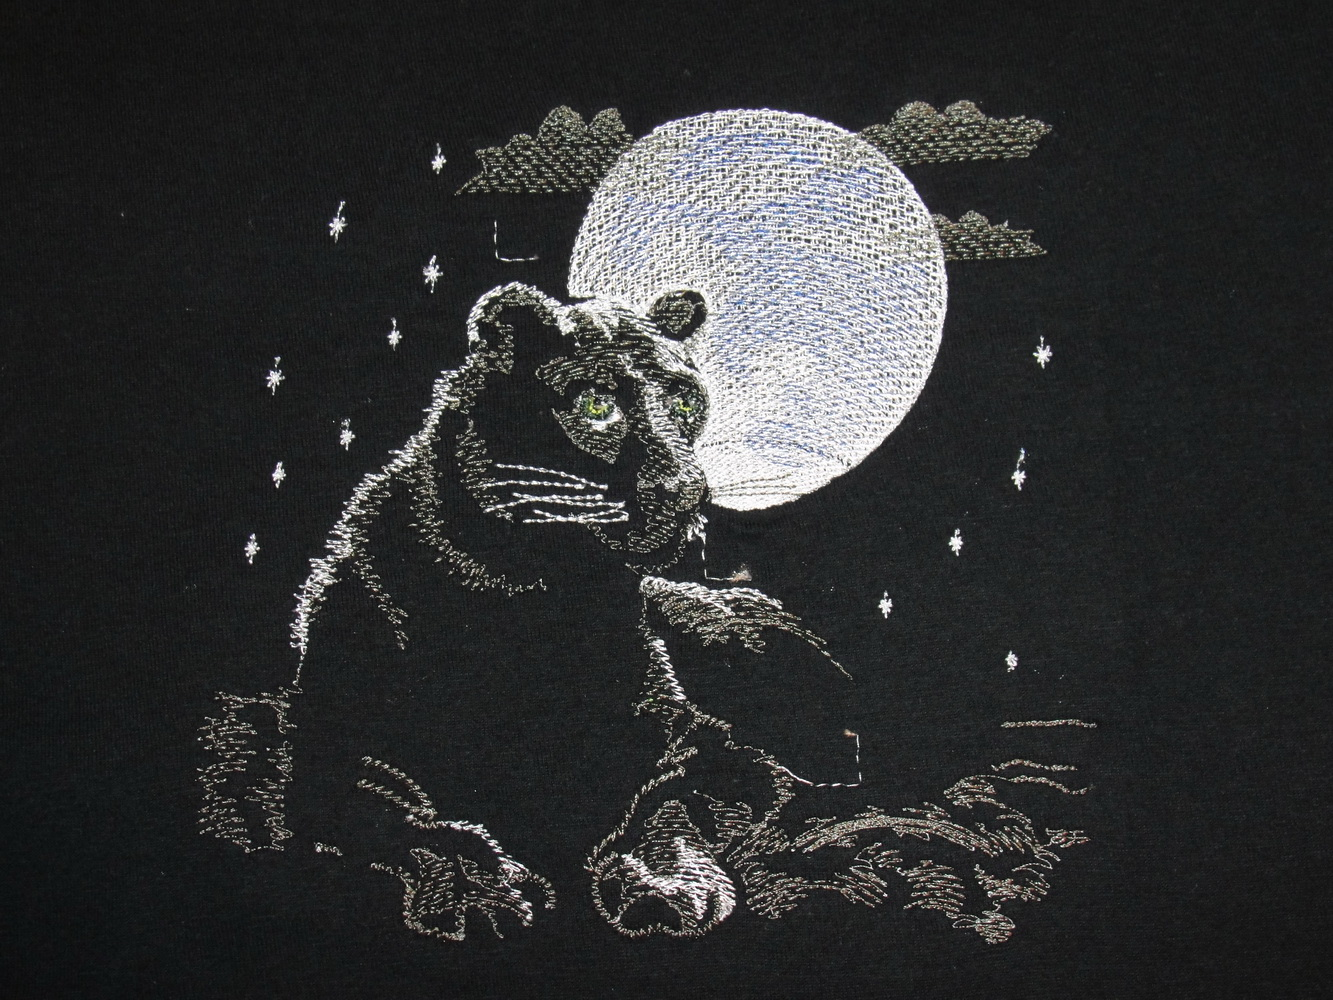 Embroidered Panther in the night